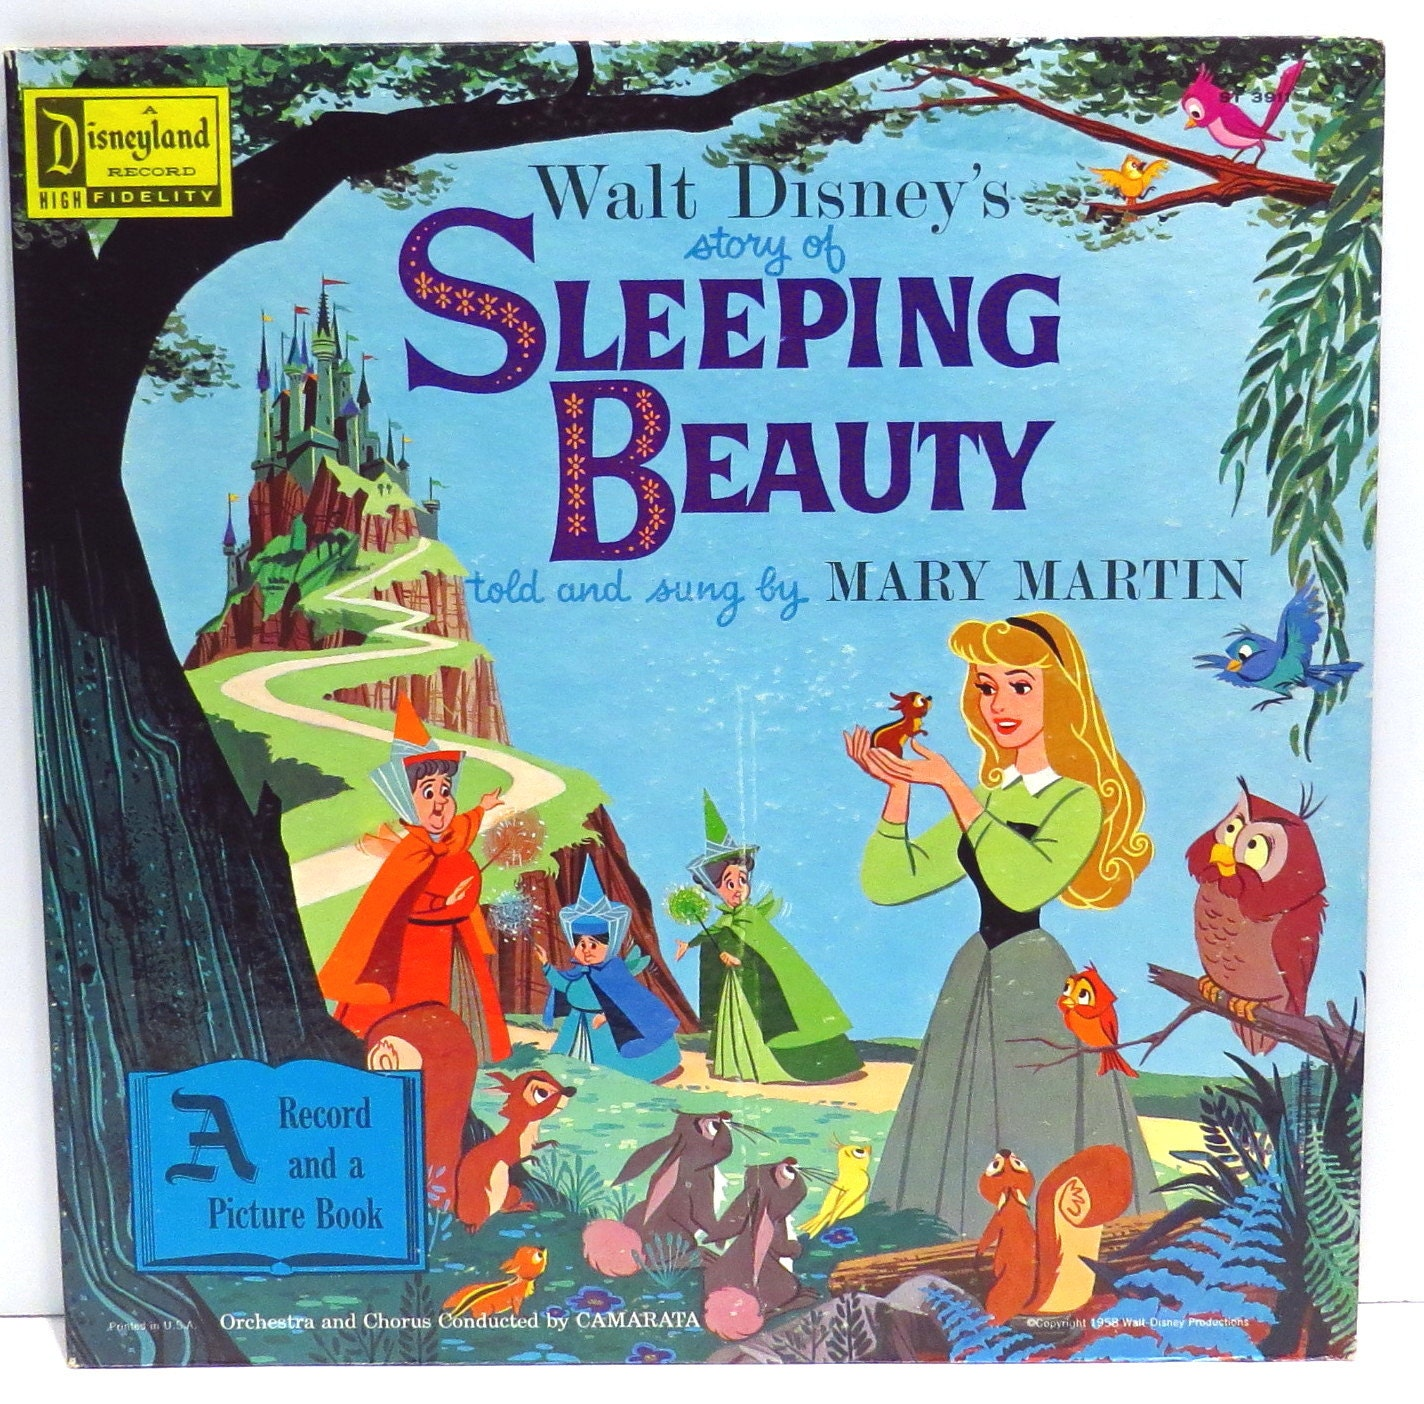 Sleeping Beauty Album Cover Purse Custom Made Vintage Record